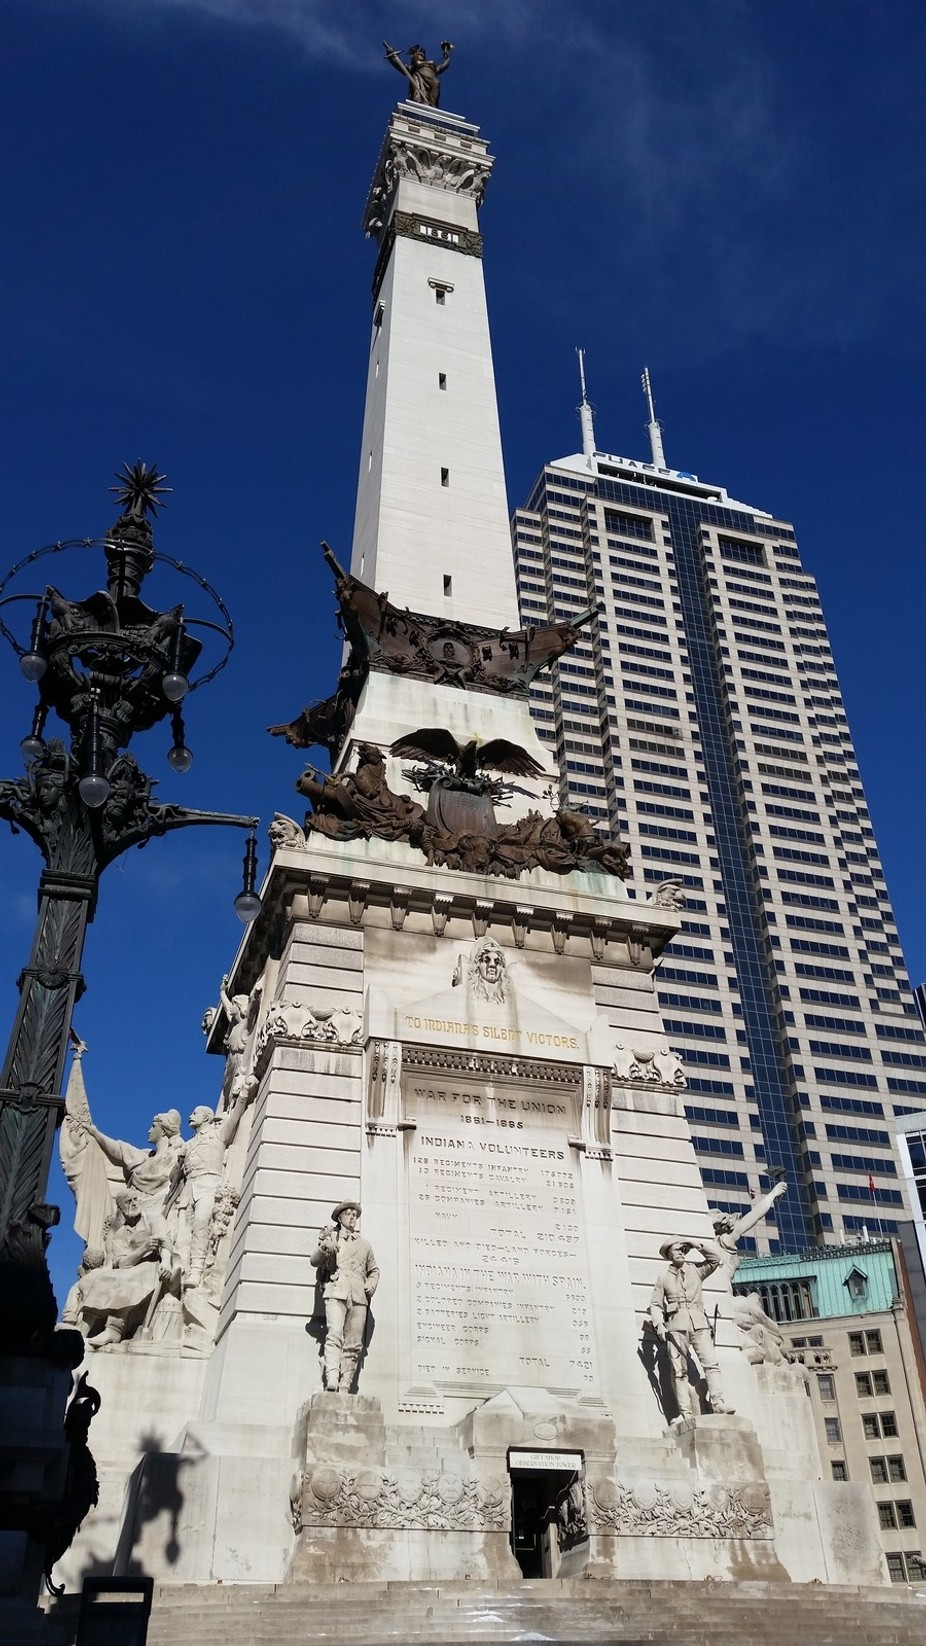 I was downtown (in Indianapolis Indiana) dropping off my son for an activity and decided that it ...